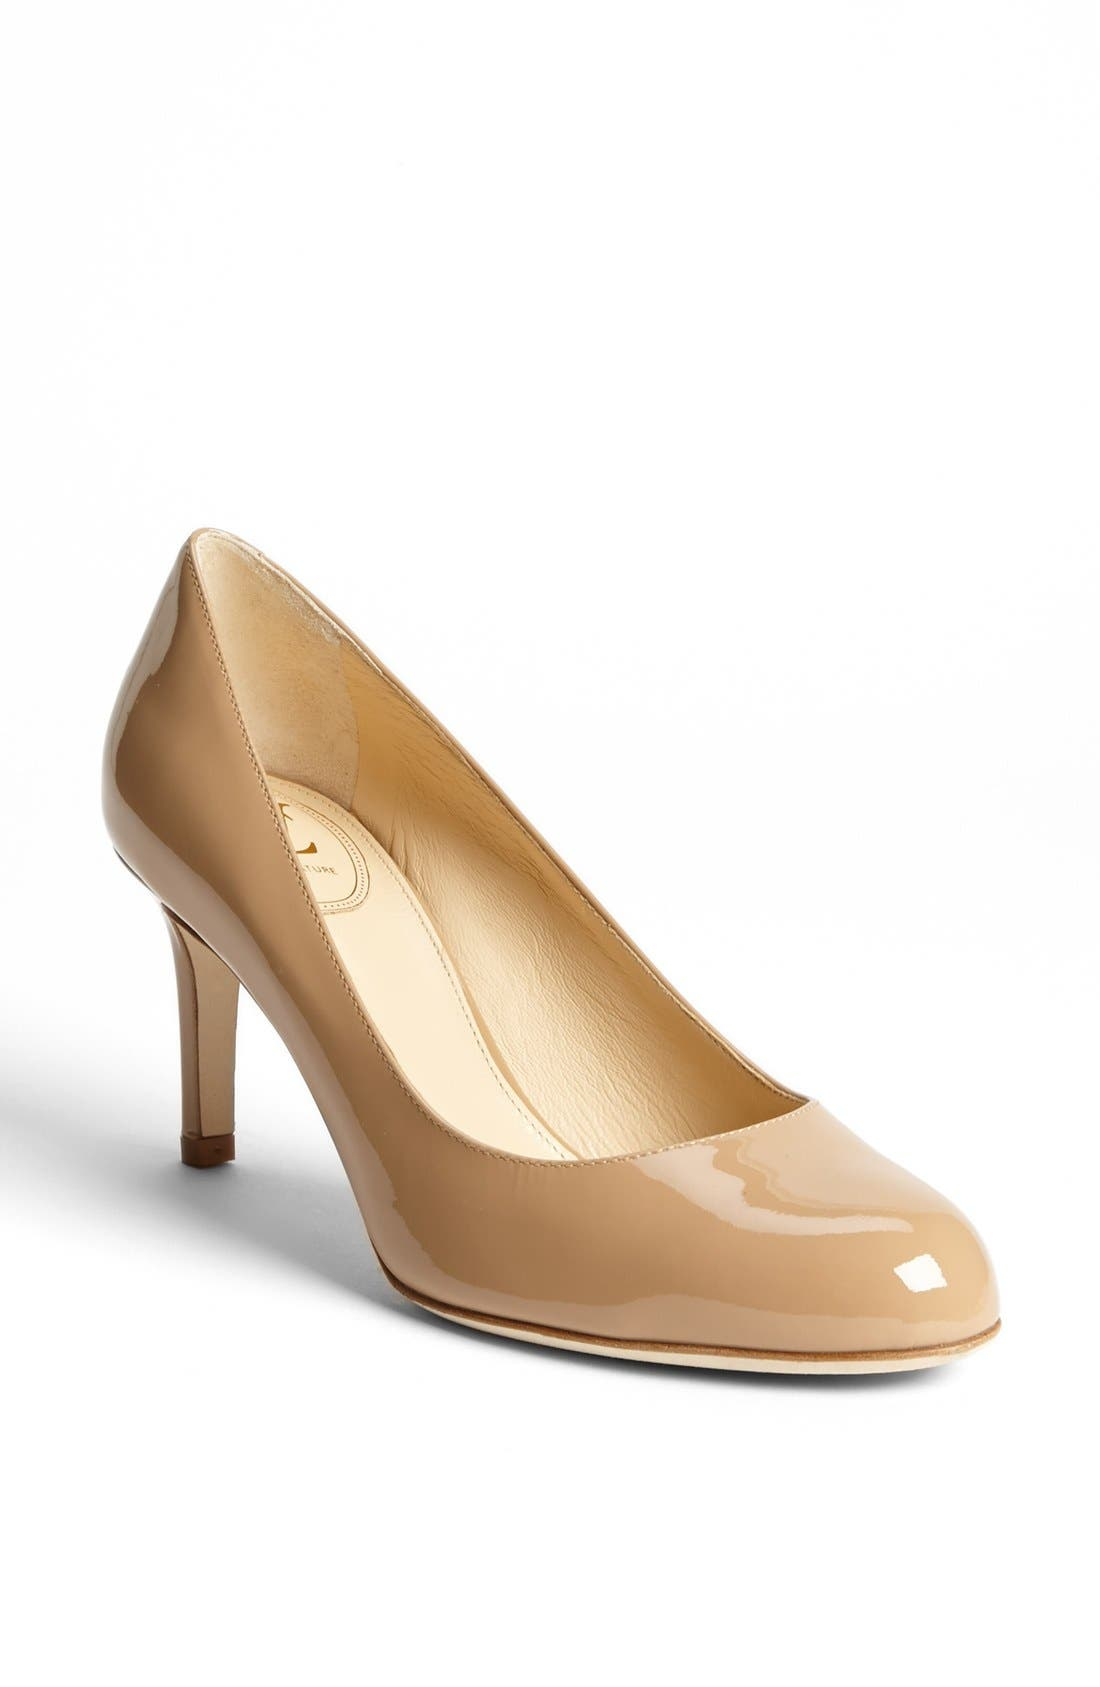 Alternate Image 1 Selected - VC Signature 'Shelley' Pump